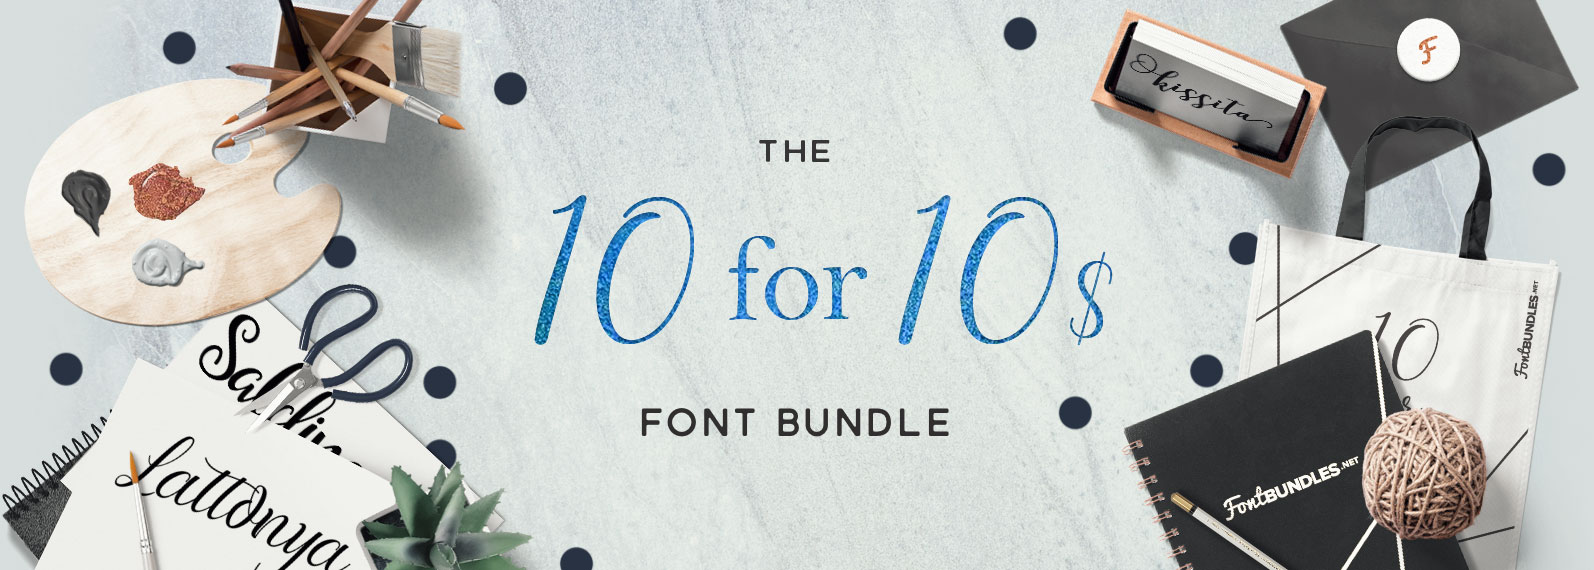 10 for $10 Cover